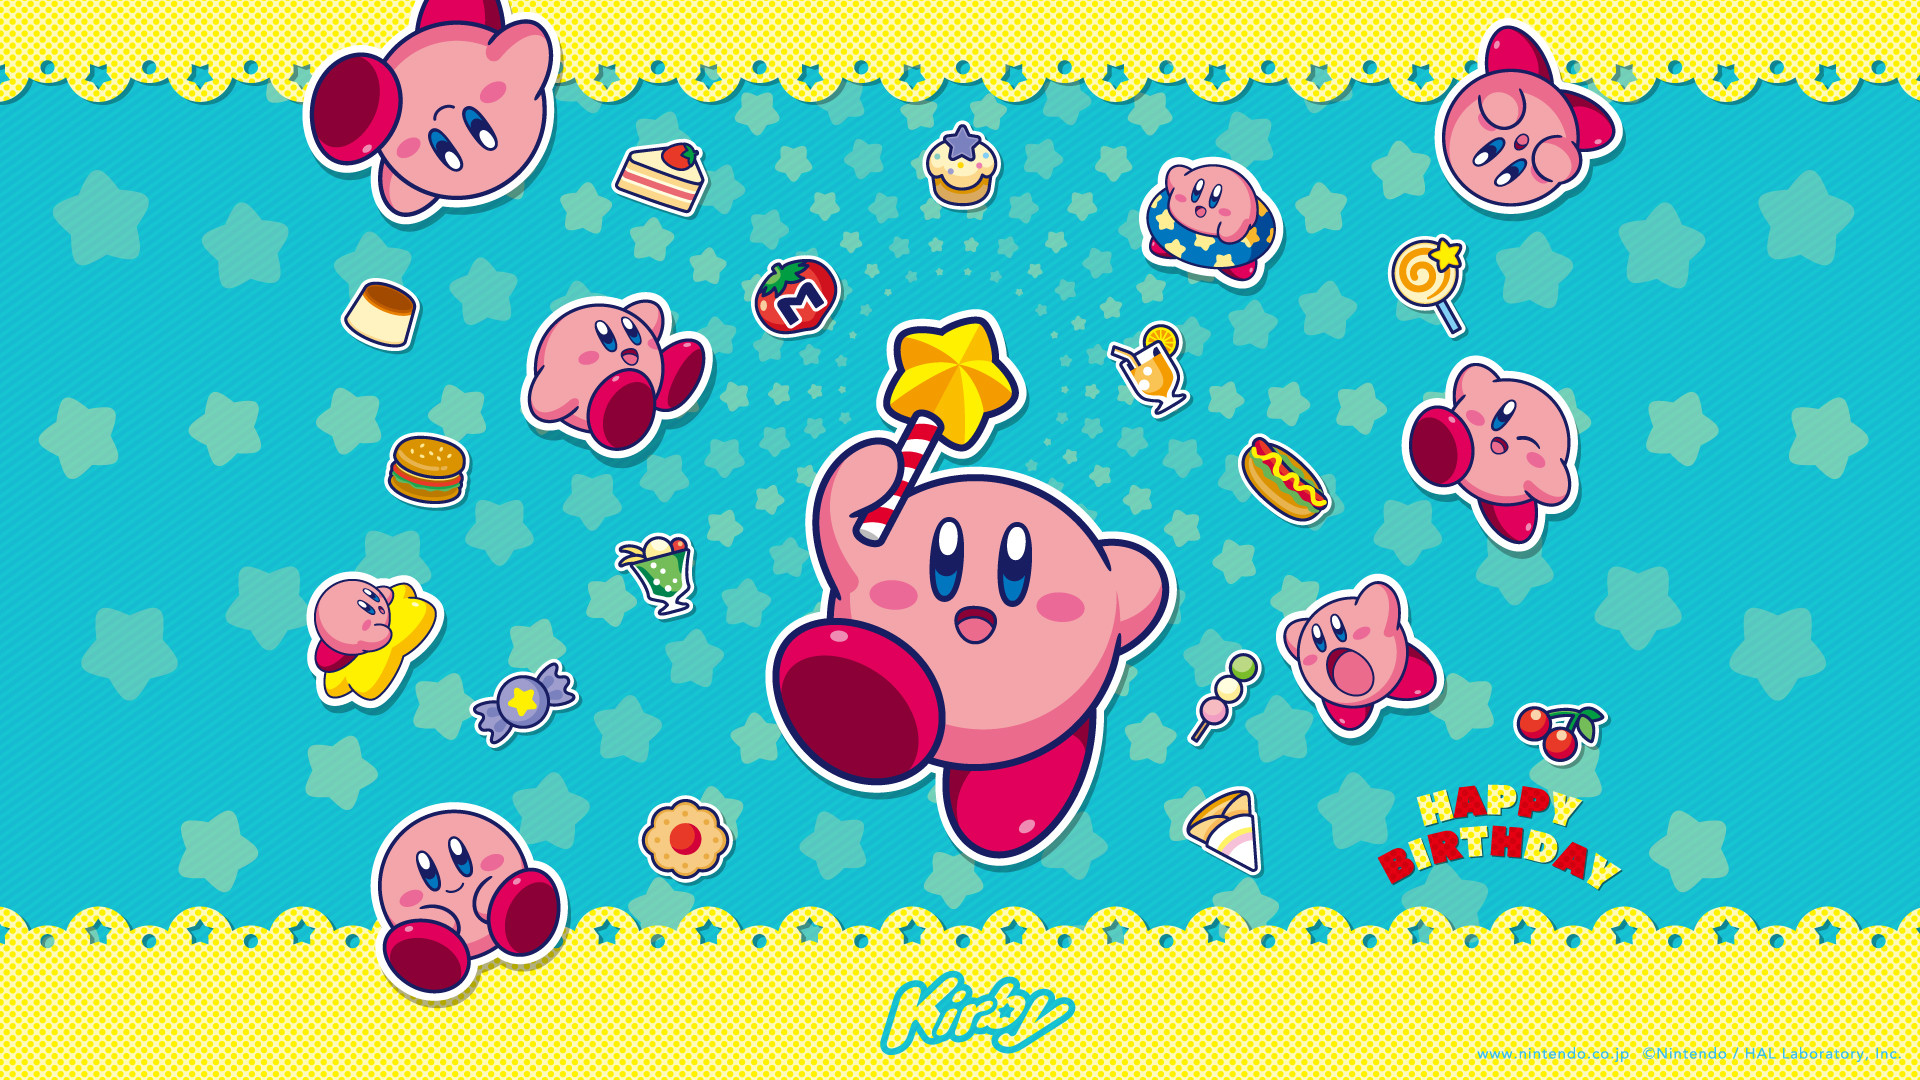 """Kirby """"Happy Birthday"""" official wallpaper available"""